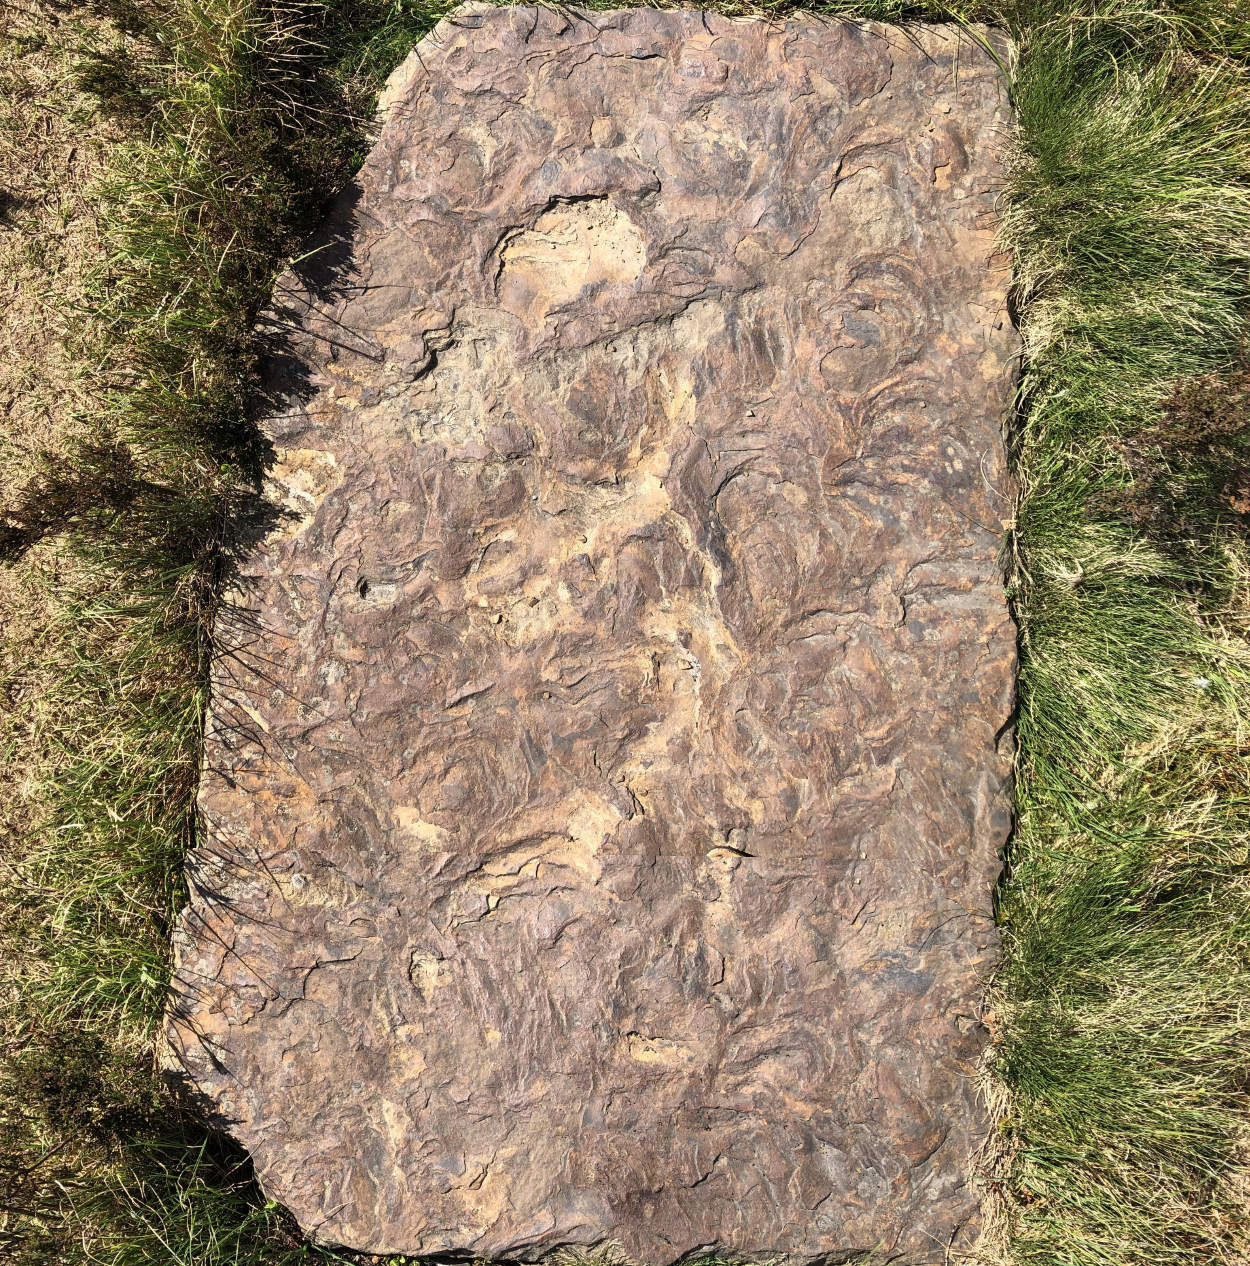 Birds-eye view of a sun-drenched flagstone on Ilkley Moor